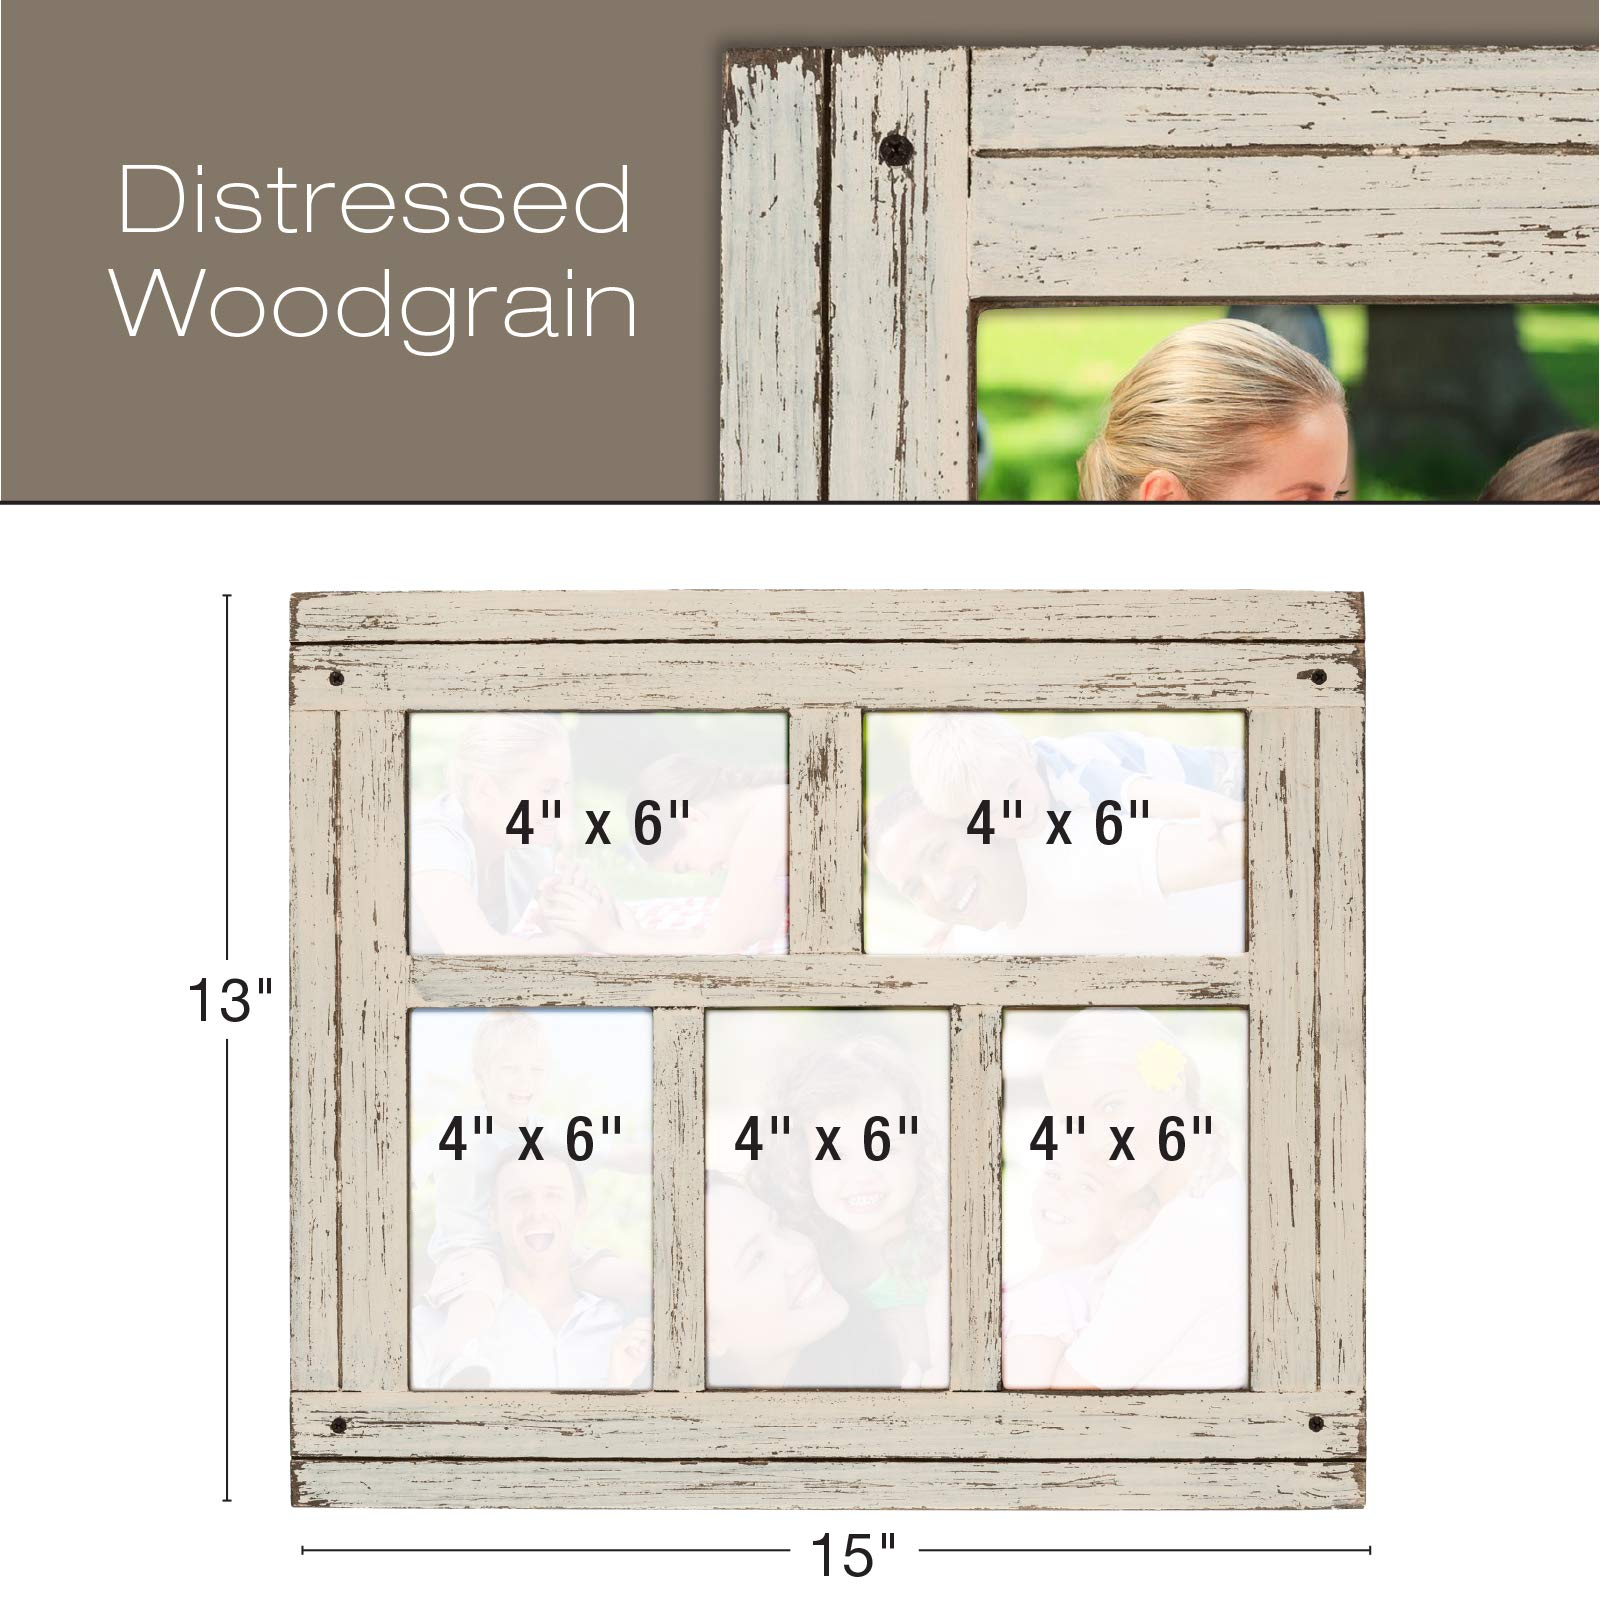 Collage Picture Frames from Rustic Distressed Wood: Holds Five 4x6 Photos: Ready to Hang or use Tabletop. Shabby Chic, Driftwood, Barnwood, Farmhouse, Reclaimed Wood Picture Frame Collage (White) by Excello Global Products (Image #3)